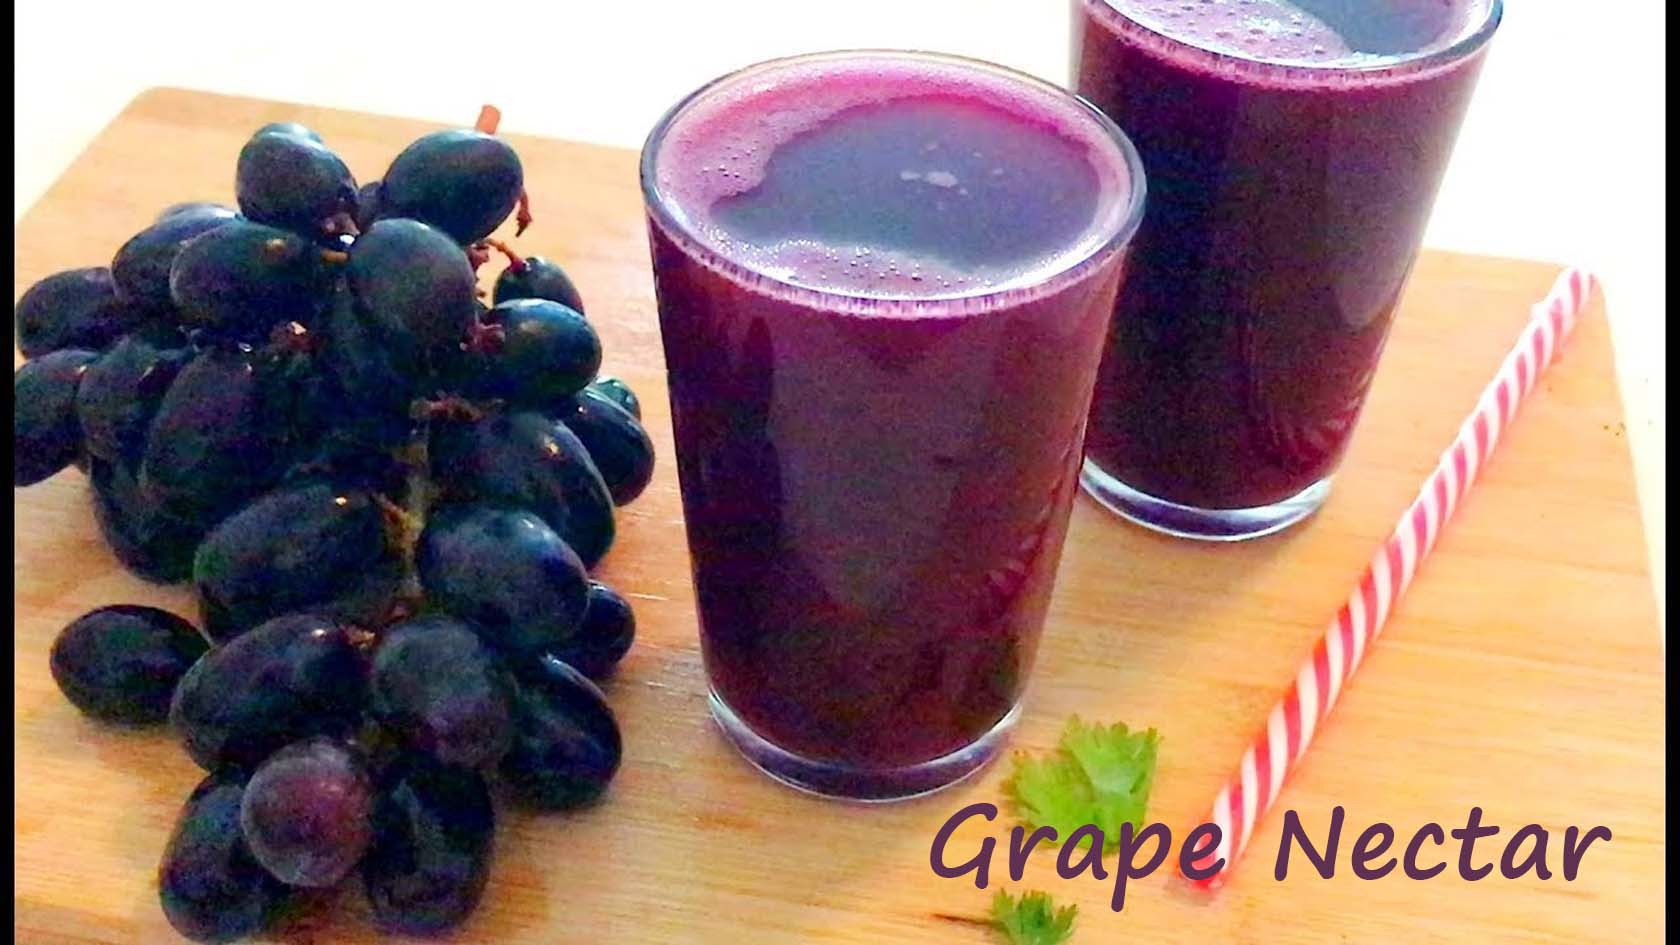 Grape Nectar